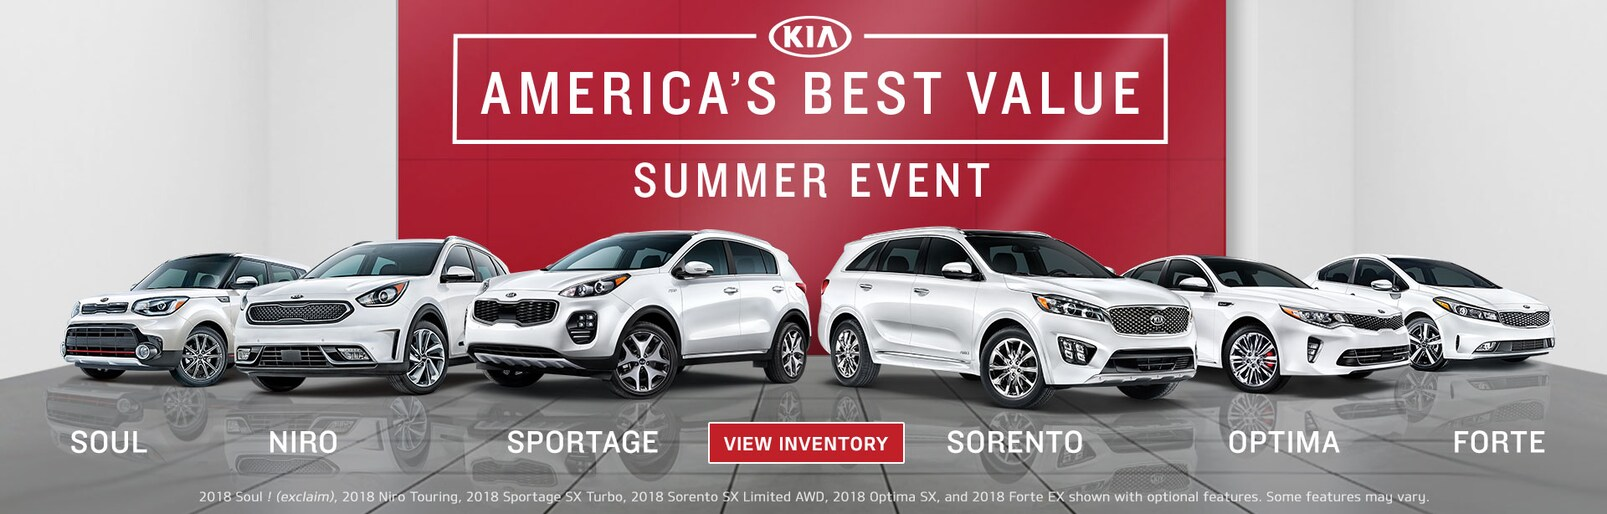 Kia Dealership Columbus Ohio >> Hatfield Kia Dealership | New & Used Car Dealer | Columbus OH